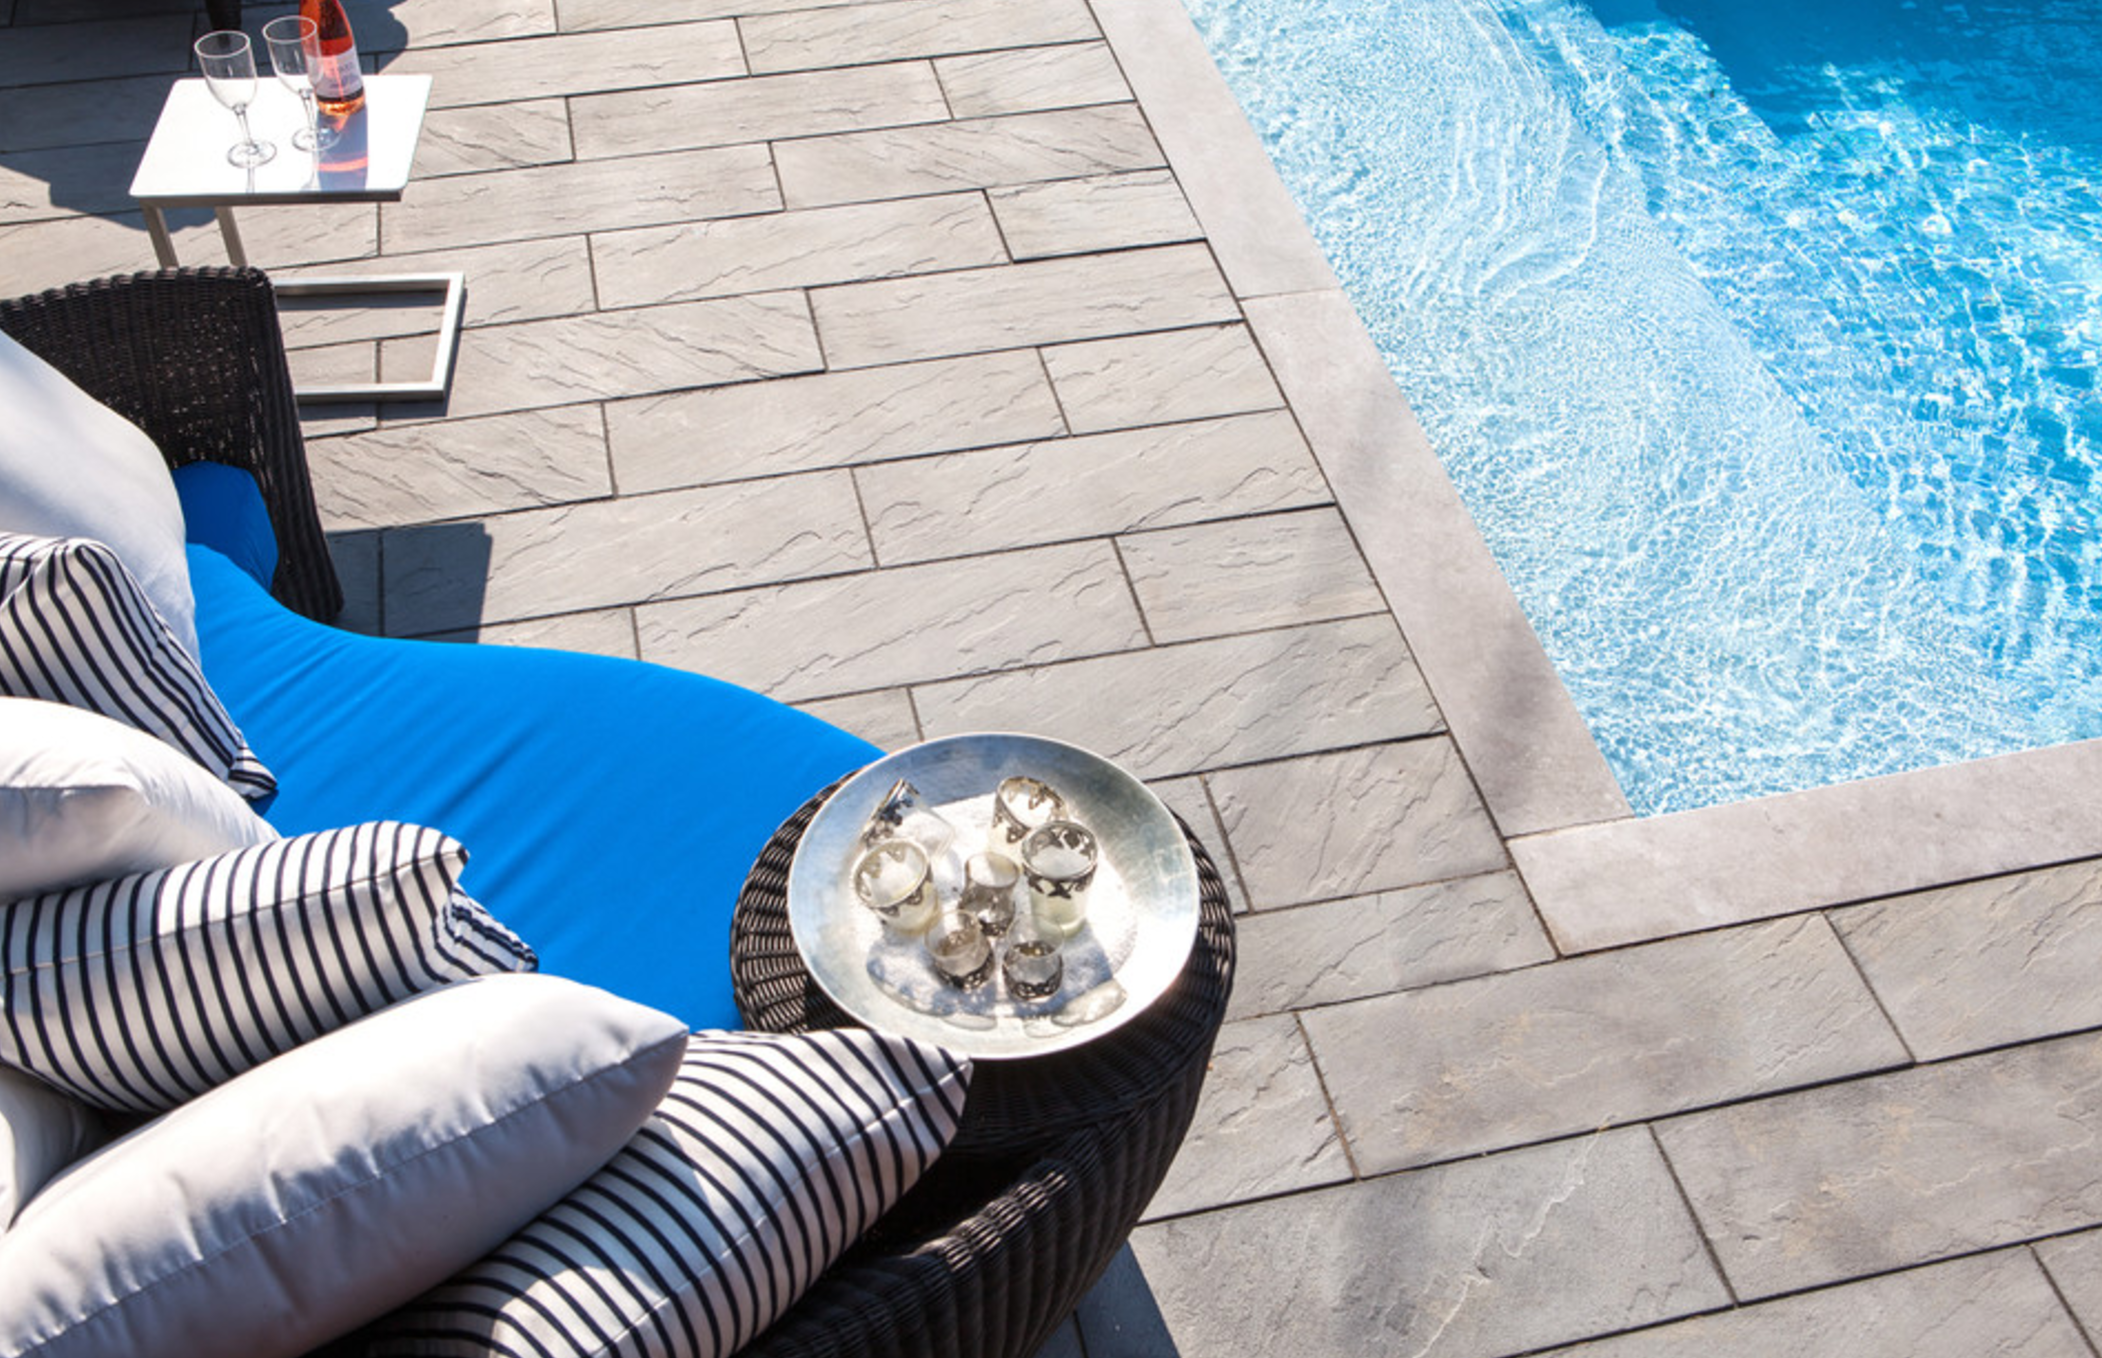 Top stone wholesalers in Sussex County, NJ